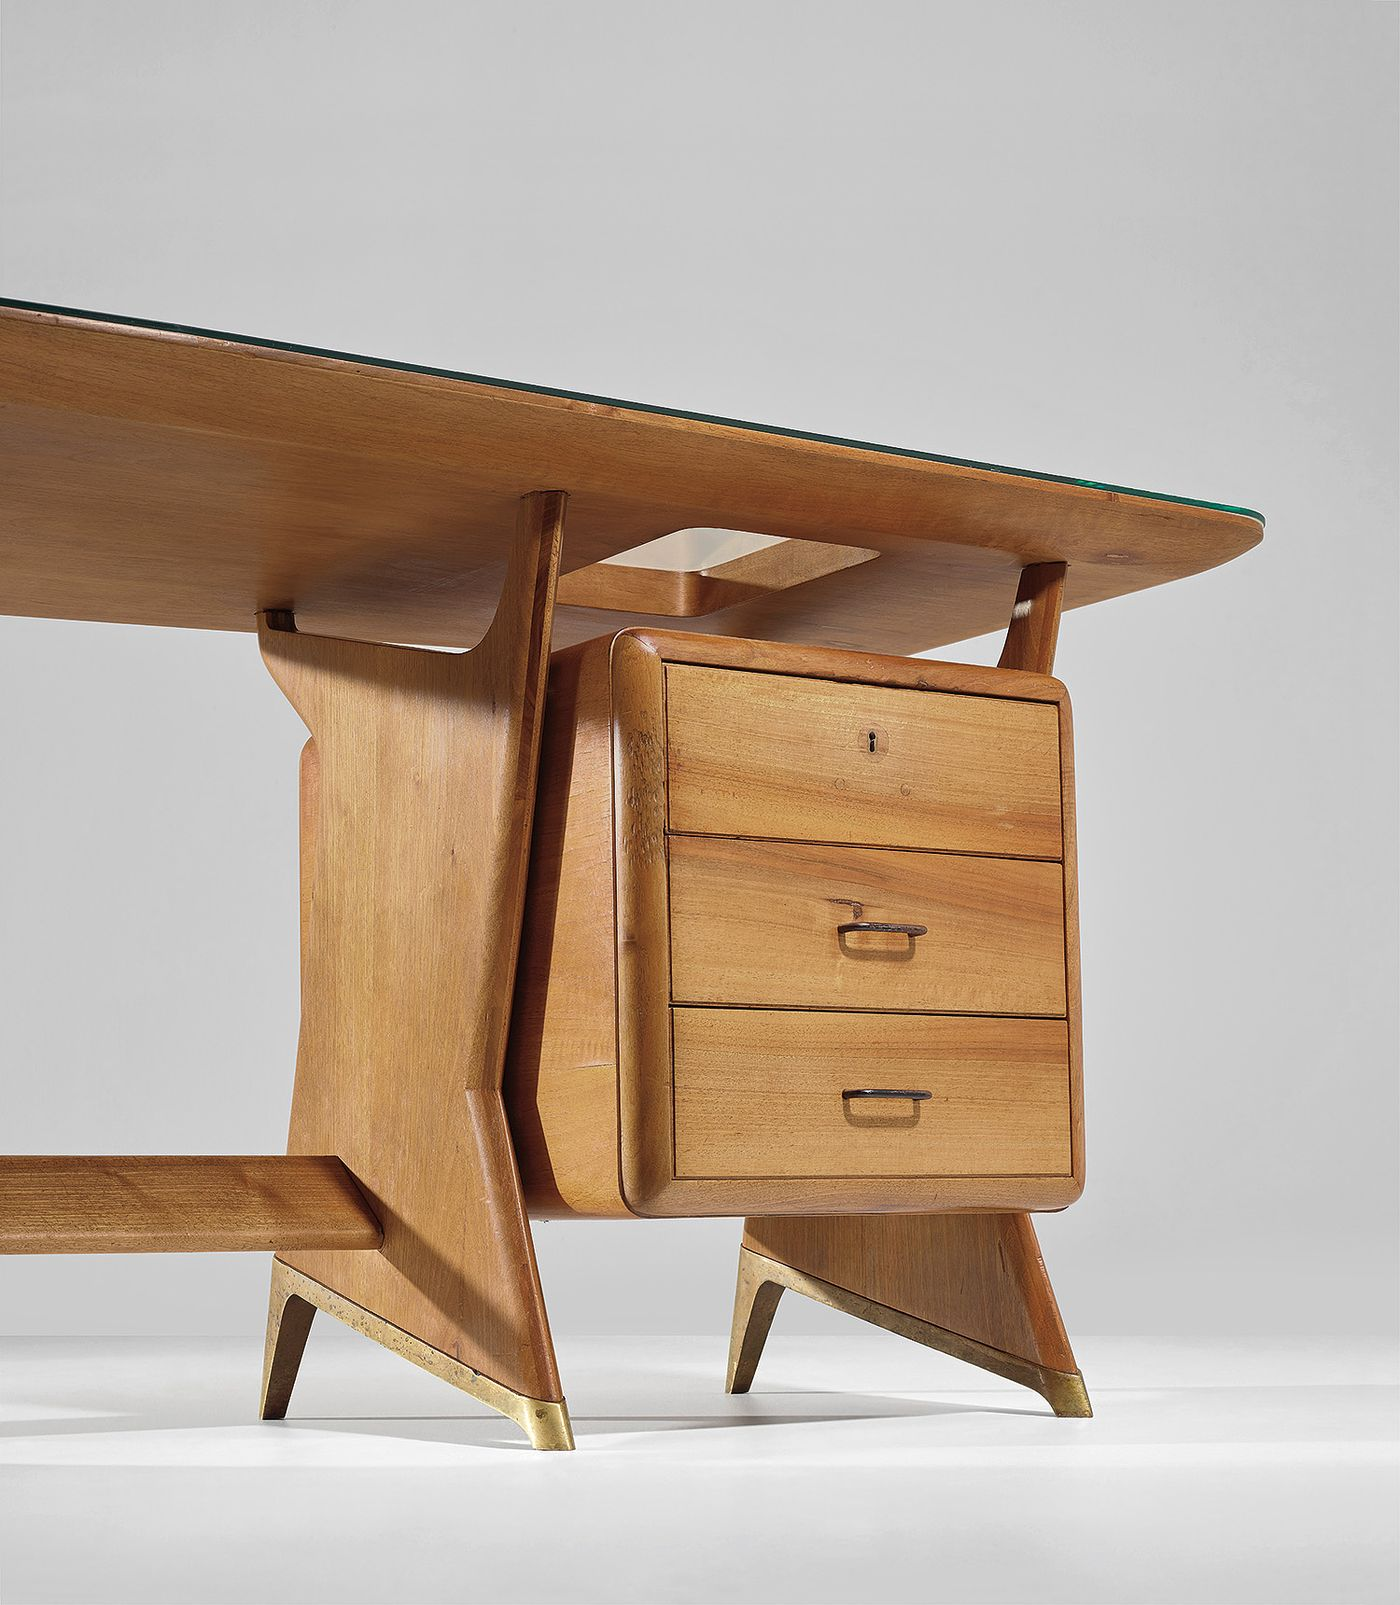 Gio Ponti scholar Brian Kish explains the history behind an executive desk of grand scale with playful tectonic elements.